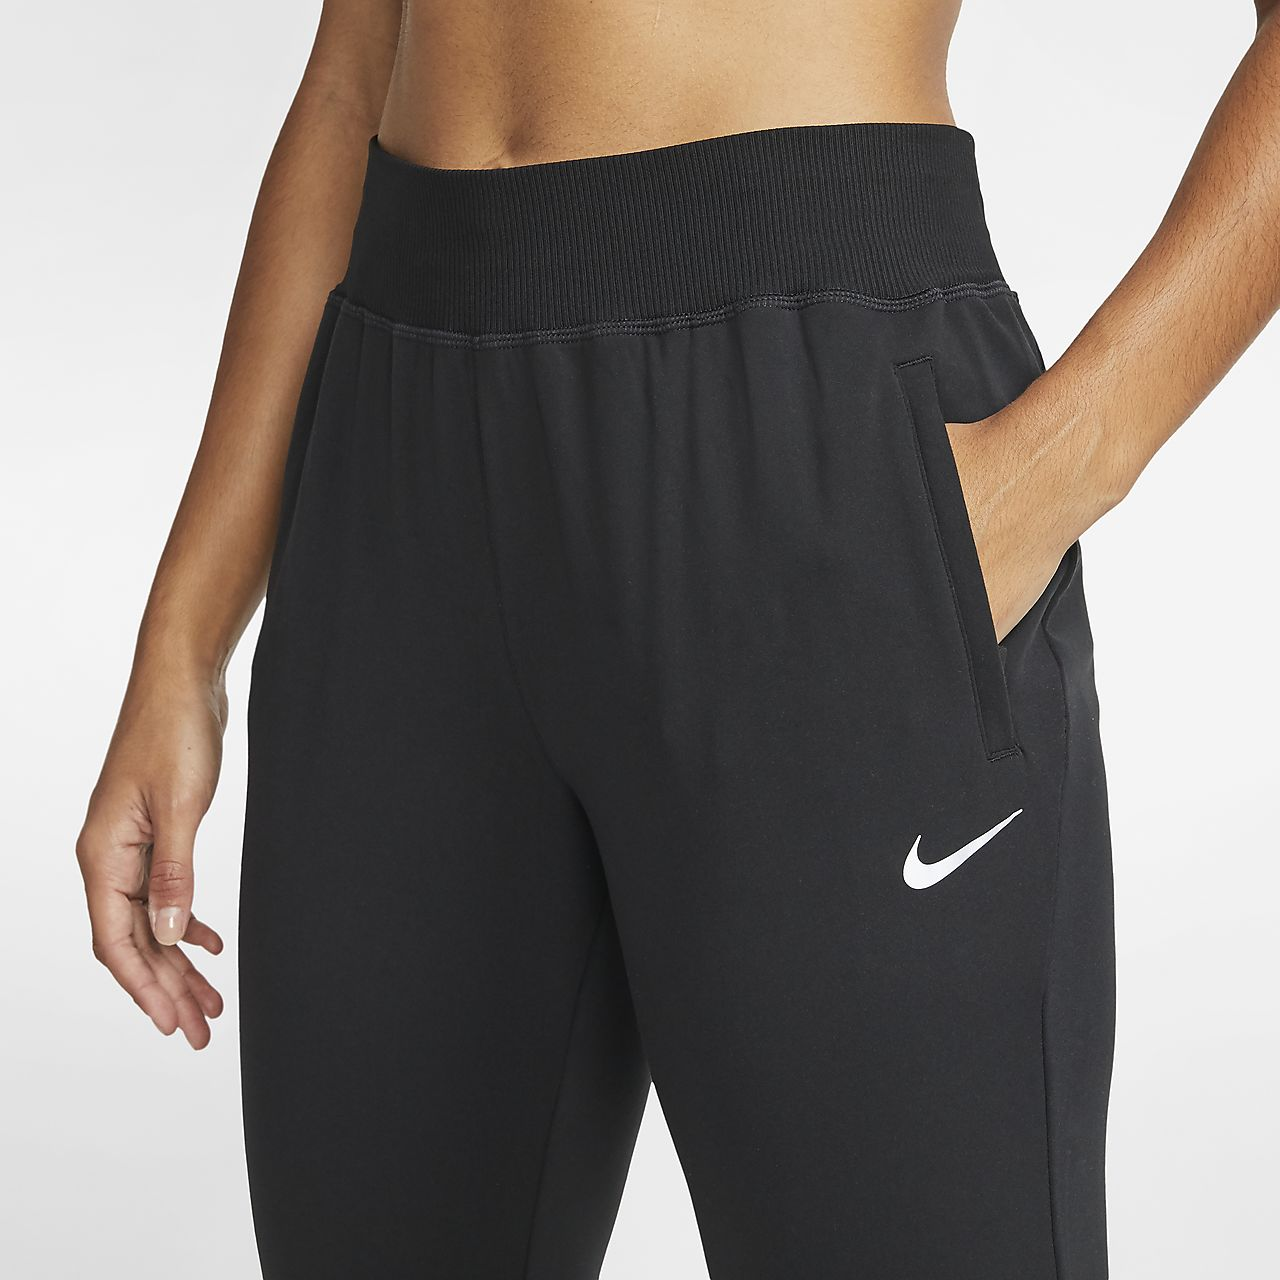 32100d25faa Low Resolution Nike Essential Hardloopbroek voor dames Nike Essential  Hardloopbroek voor dames